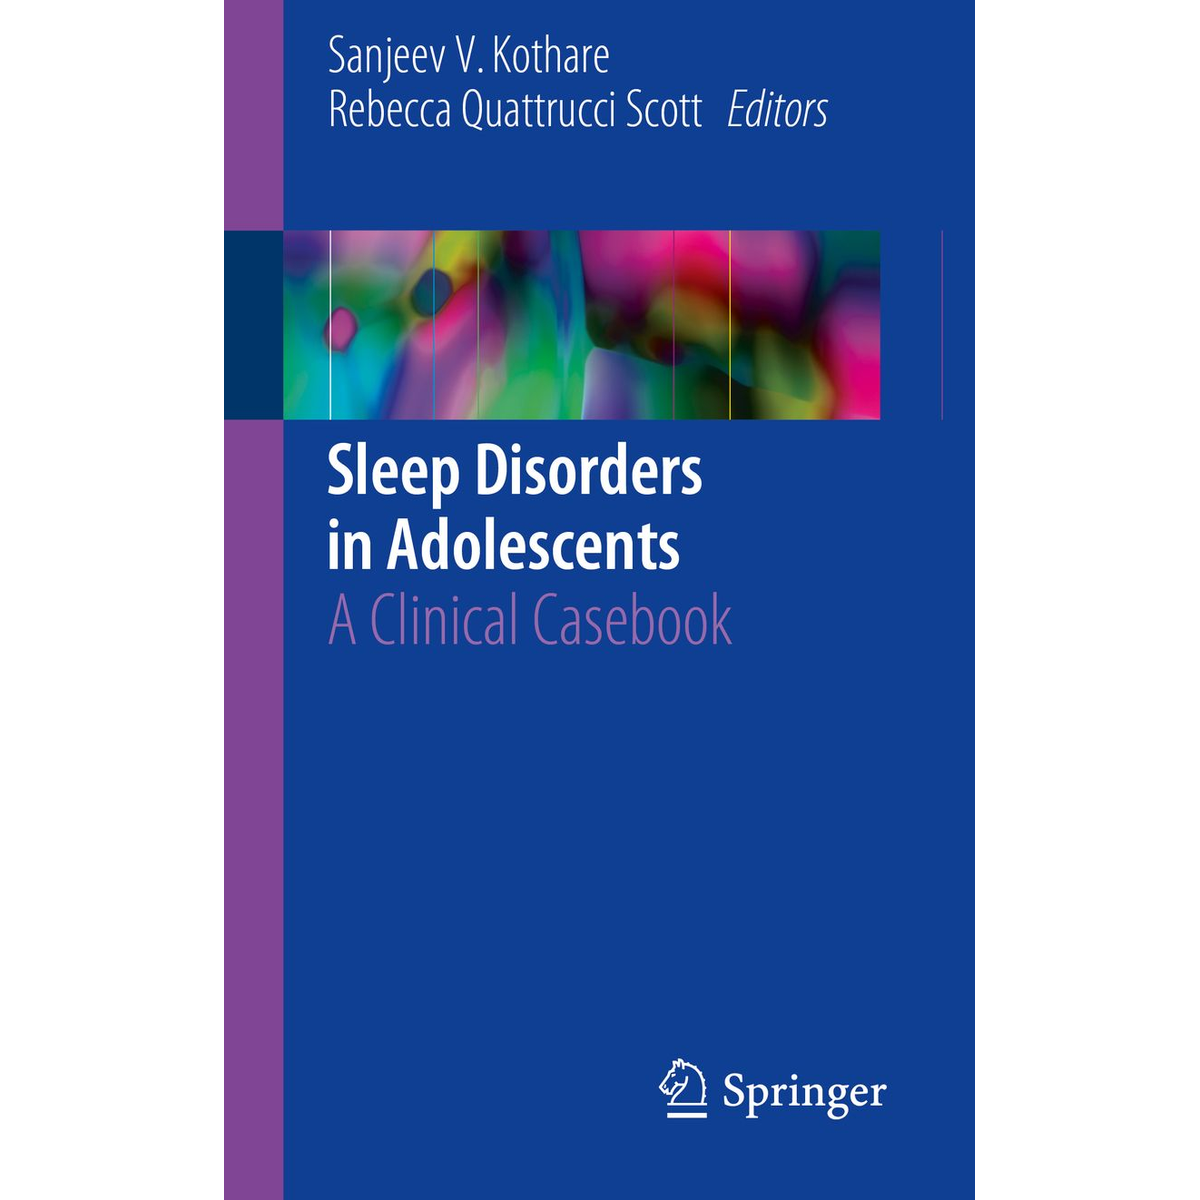 Sleep Disorders in Adolescents - A Clinical Casebook